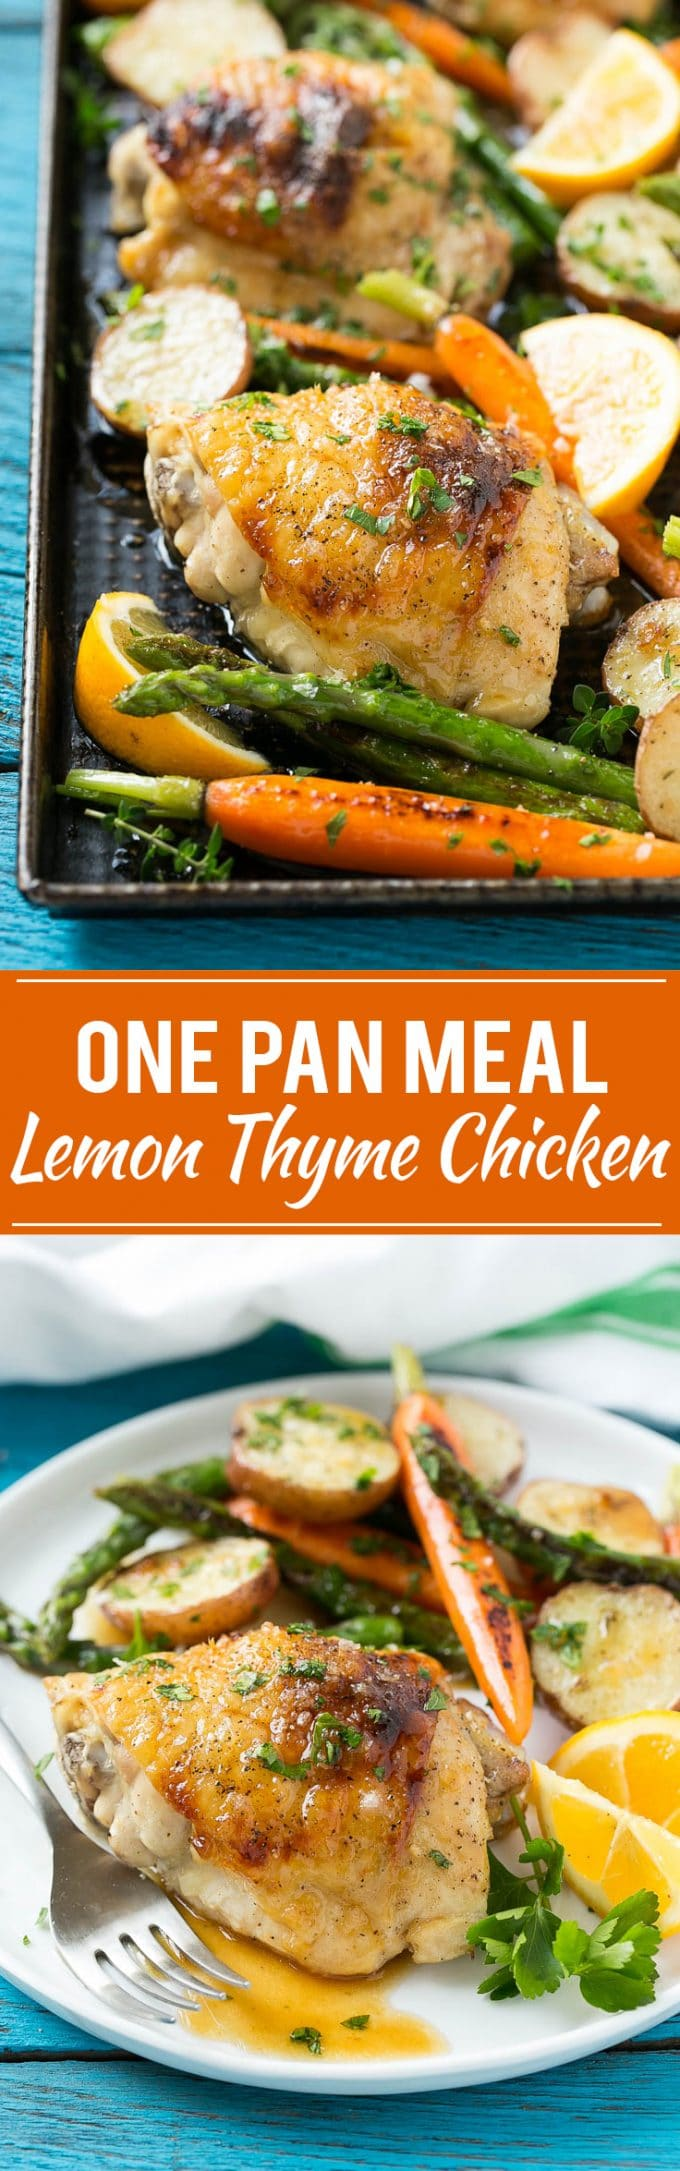 Lemon Thyme Chicken Recipe | Lemon Thyme Chicken with Vegetables | Sheet Pan Lemon Chicken | Easy Sheet Pan Chicken and Vegetables